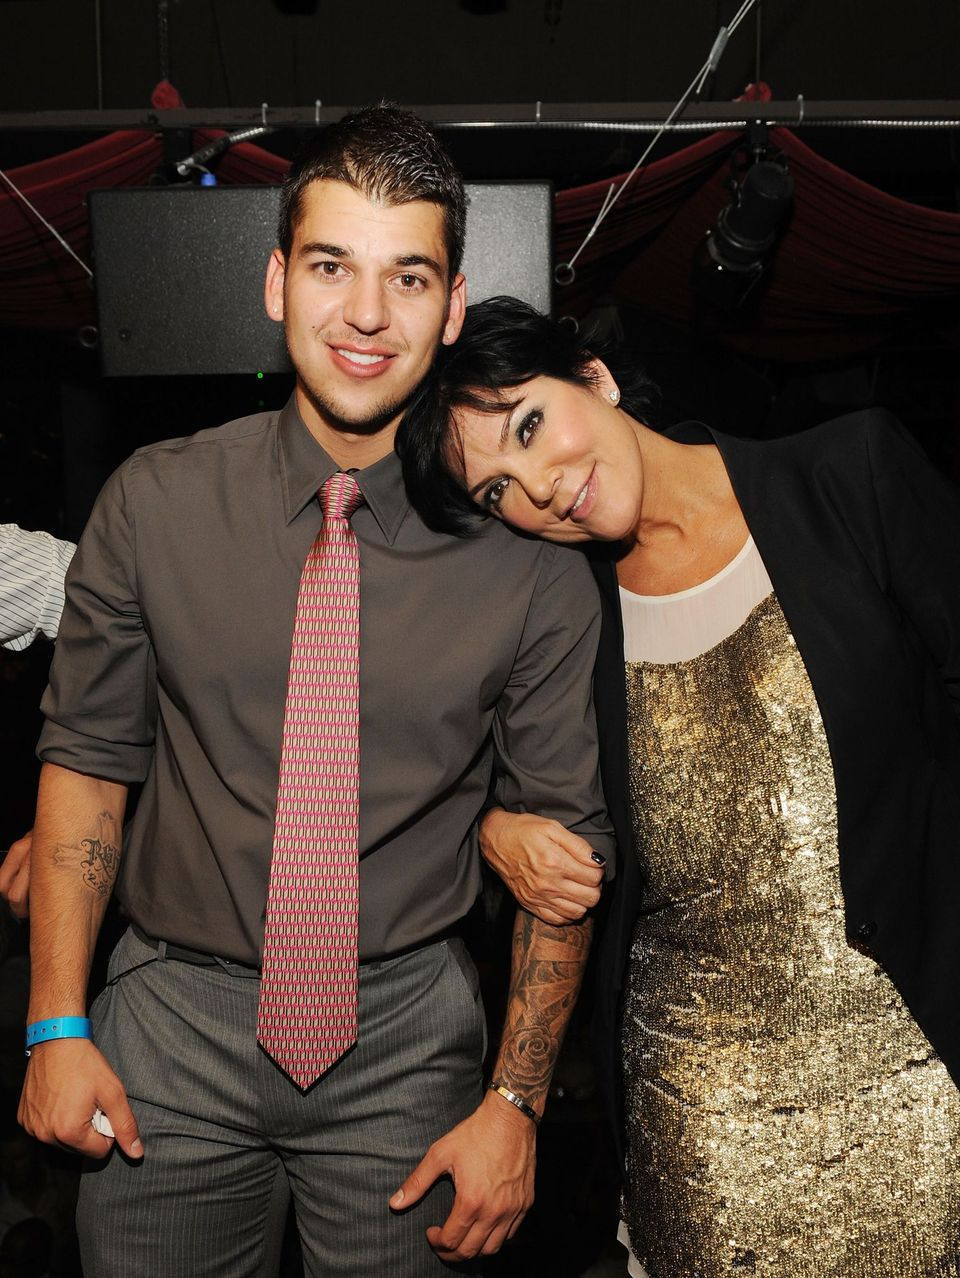 Rob Kardashian and Kris Kardashian during a night out at TAO Nightclub at the Venetian on October 16, 2009 in Las Vegas, Nevada.   Source: Getty Images